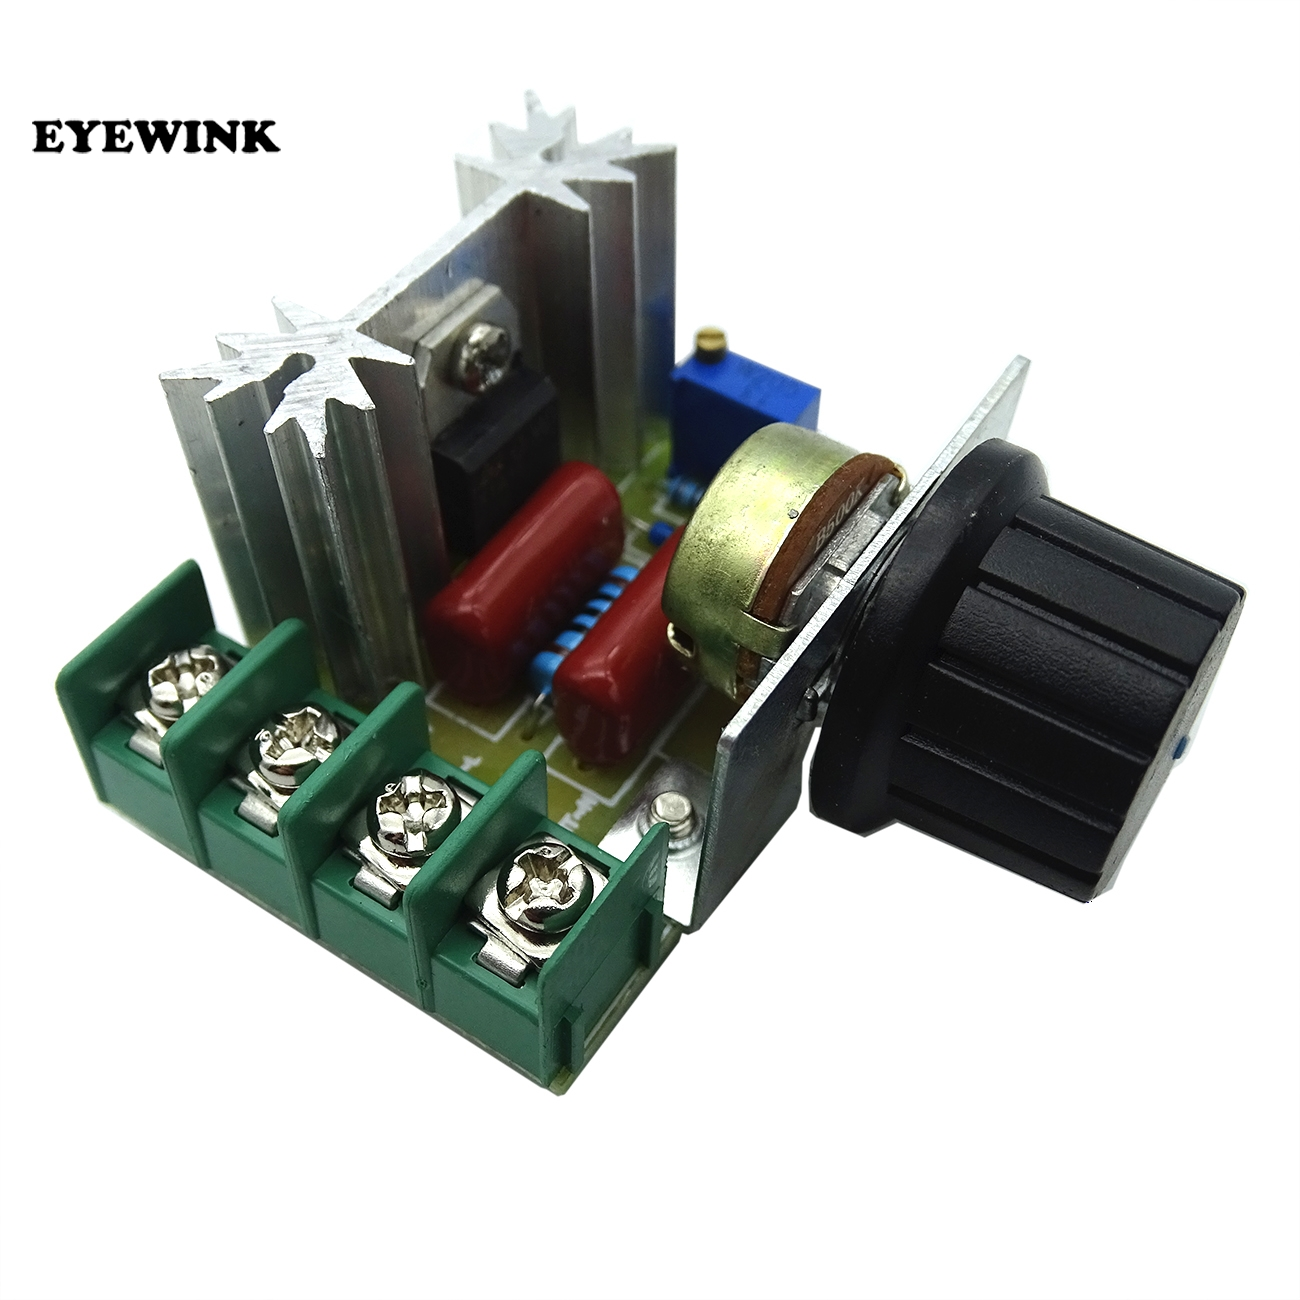 2019 New Style Eyewink 5pcs/lot Smart Electronics 220v 2000w Speed Controller Scr Voltage Regulator Dimming Dimmers Thermostat Electronics Production Machinery